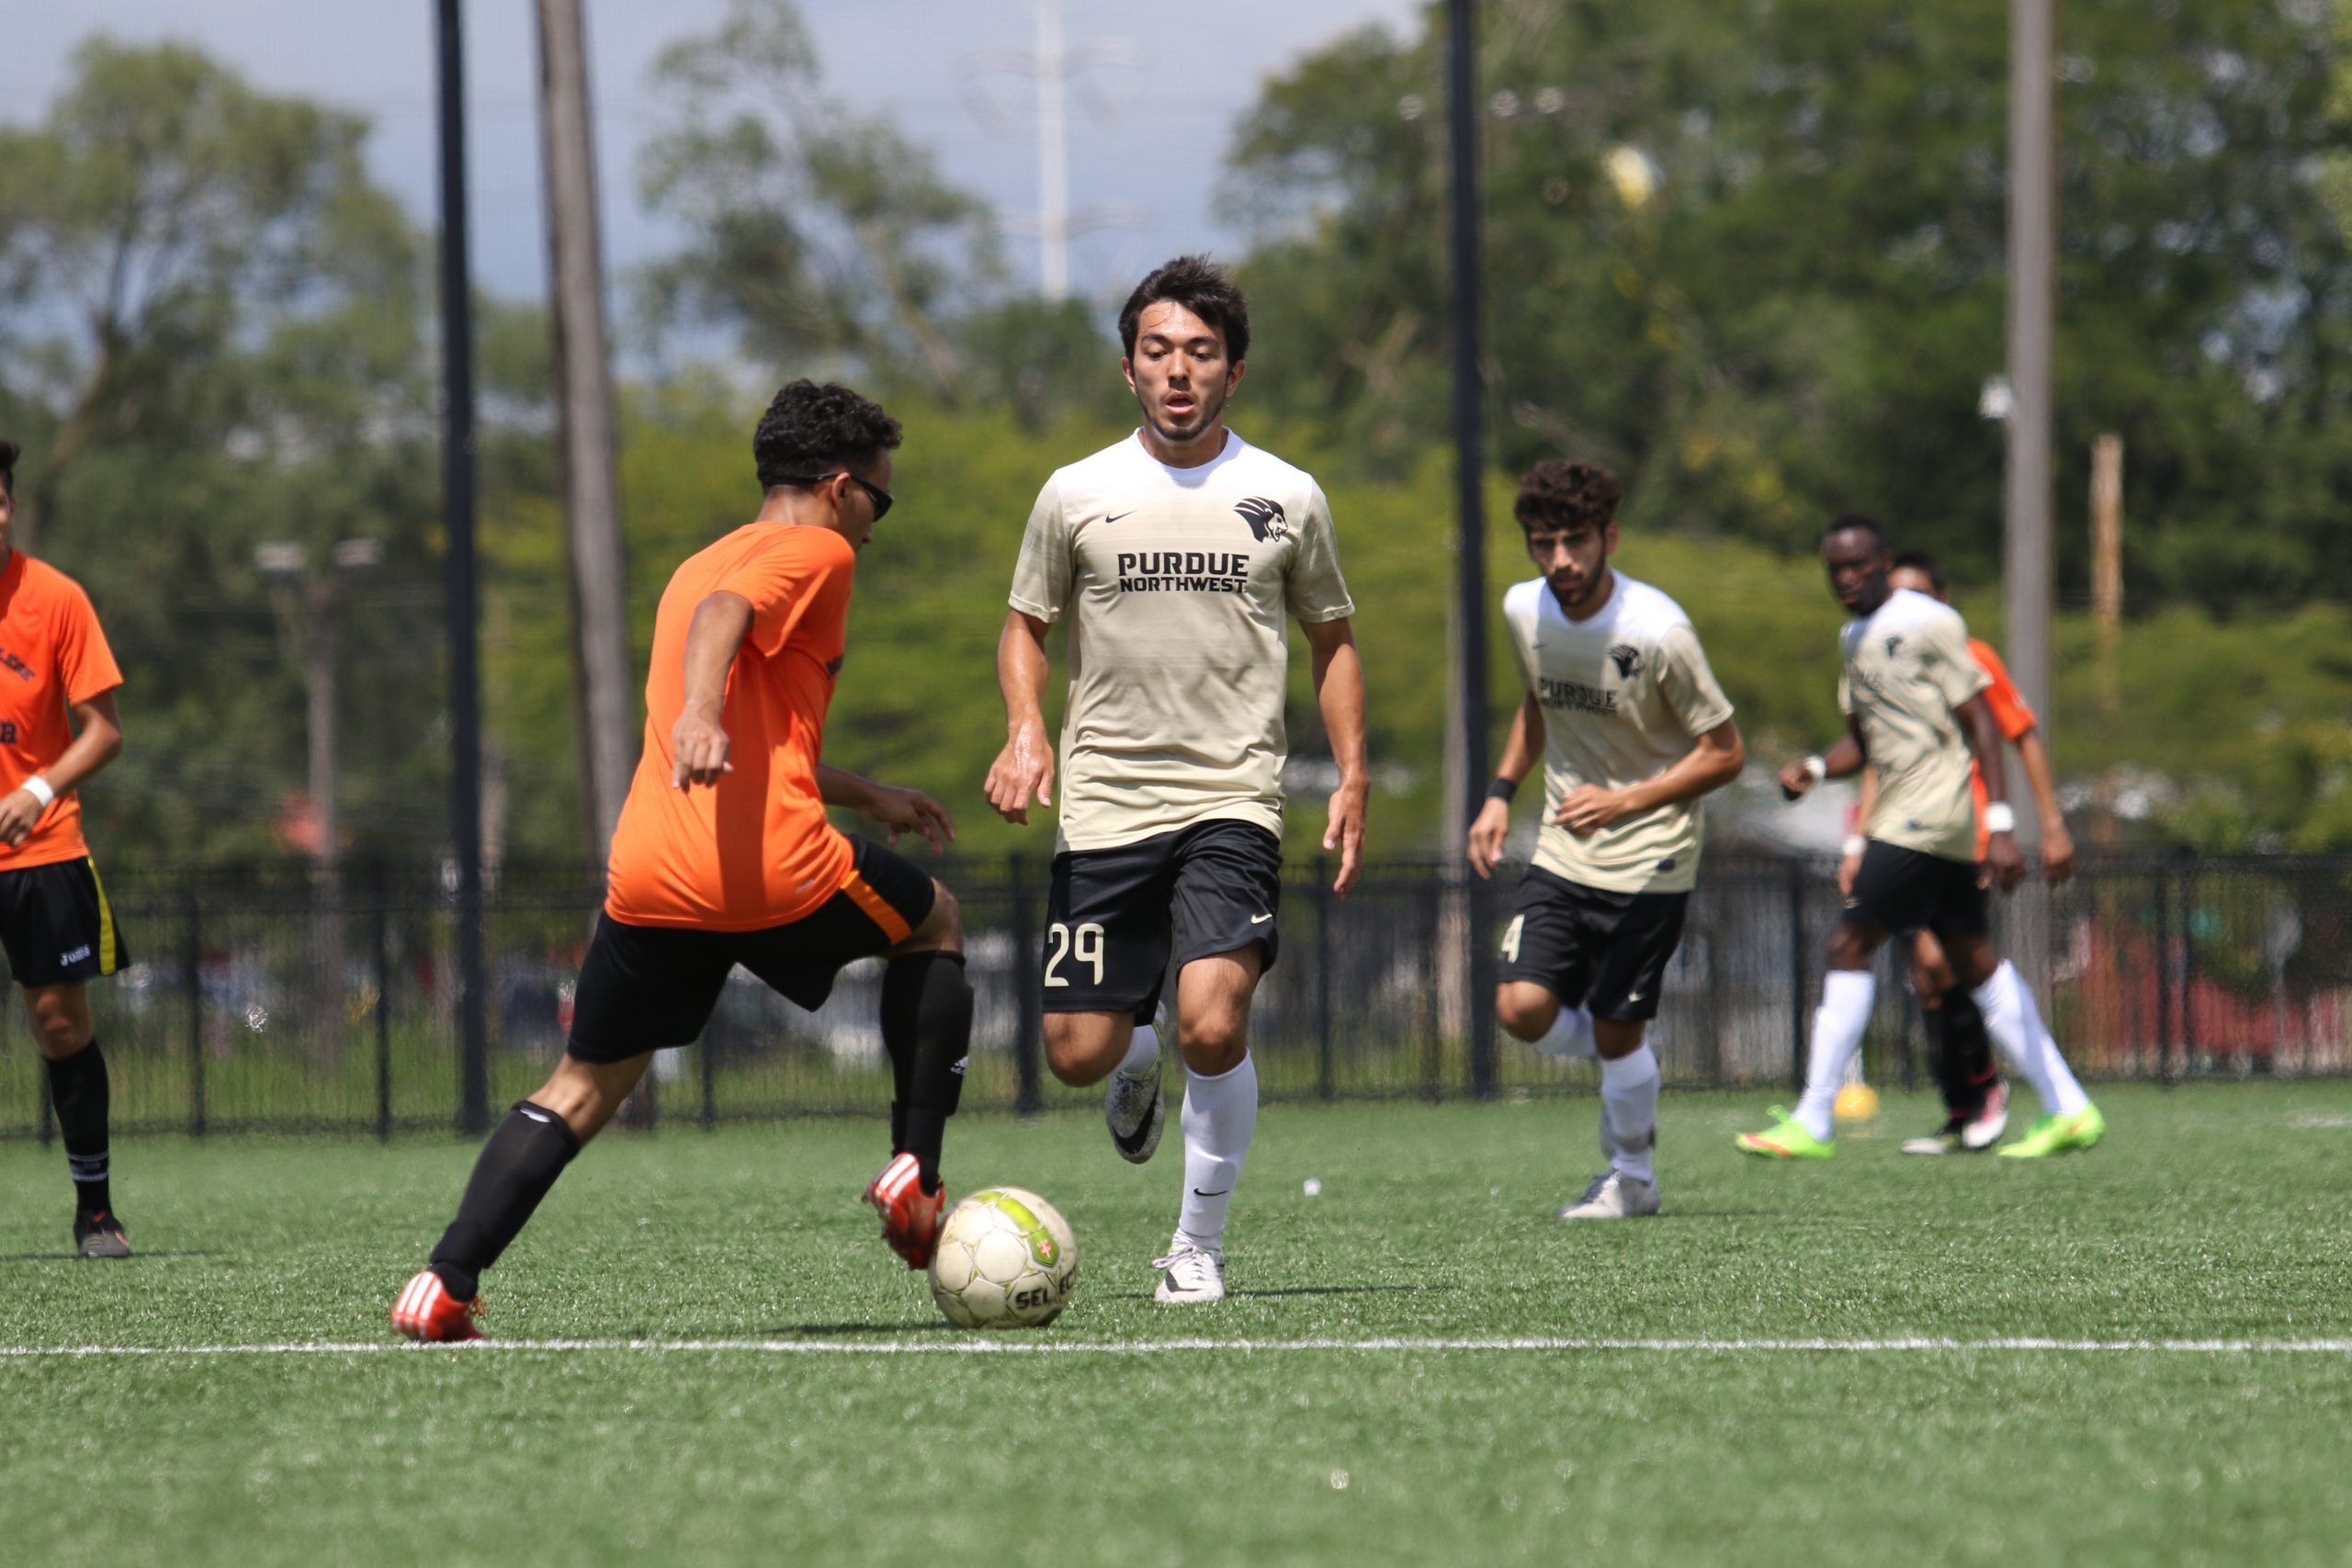 A PNW soccer player advances the ball up the field